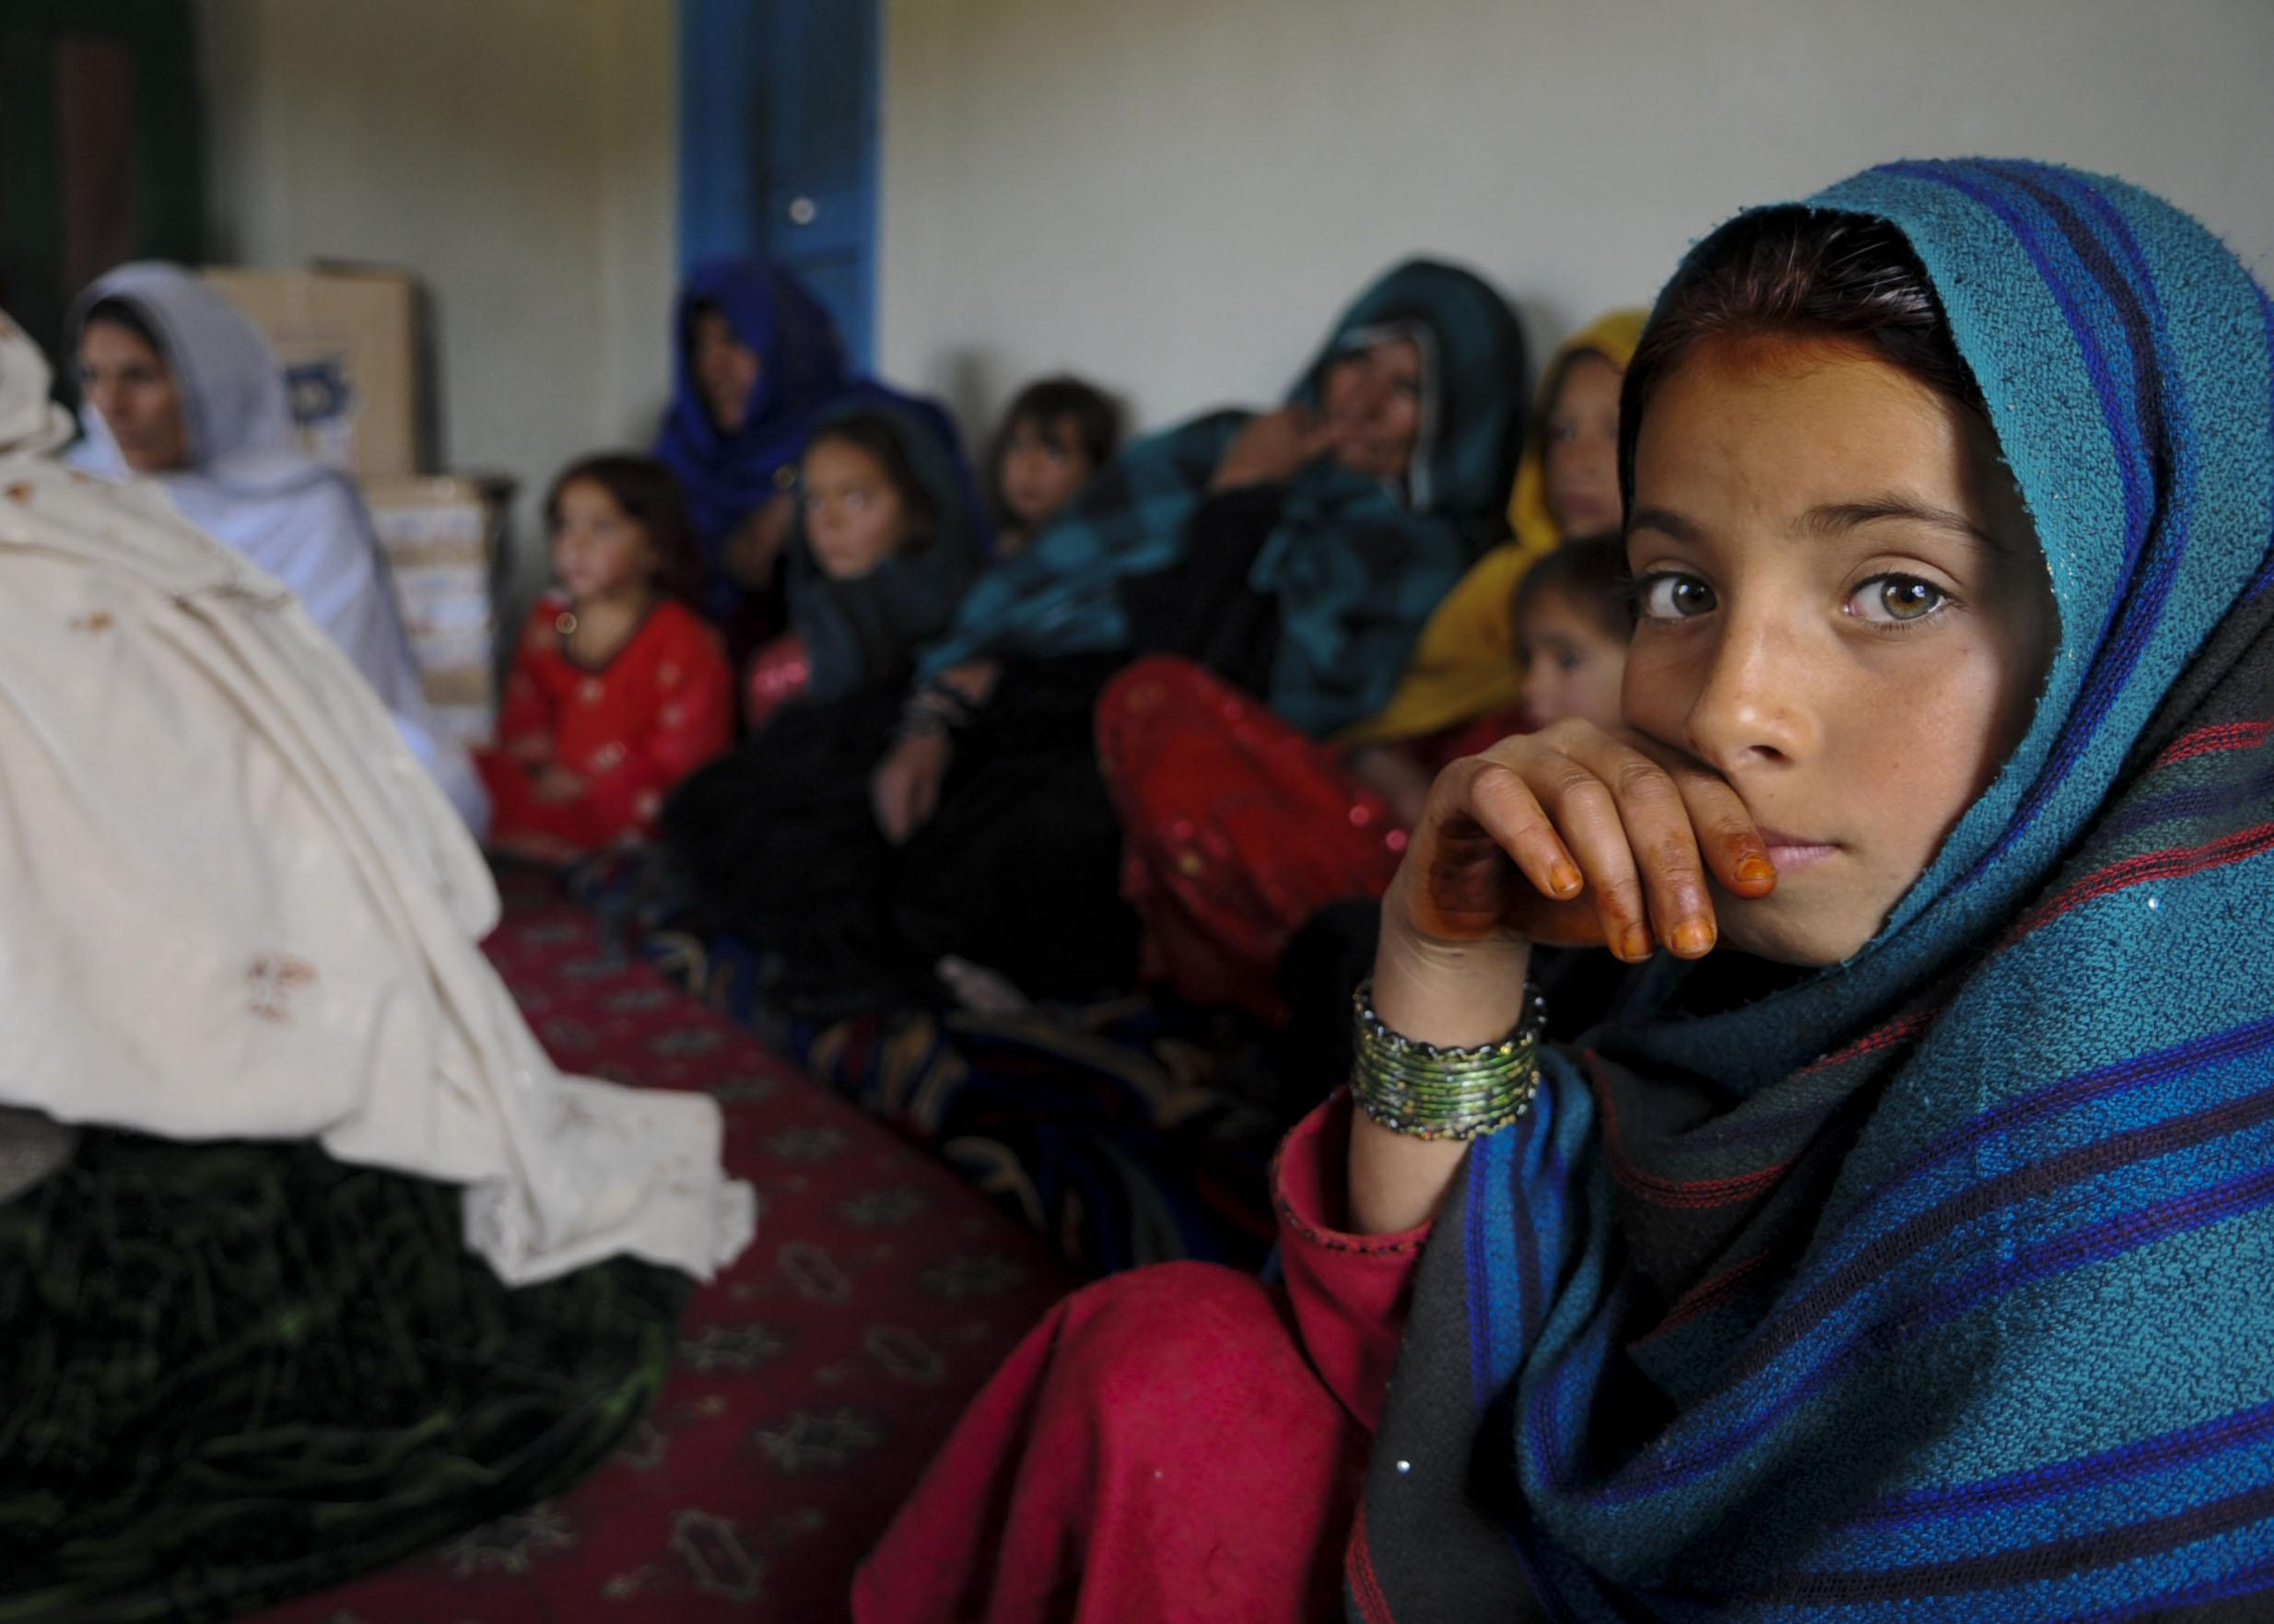 women in afghanistan essay The plight of women under the taliban regime provided the united states with a tidy moral justification for its invasion of afghanistan—a talking point that laura bush took the lead in driving home.